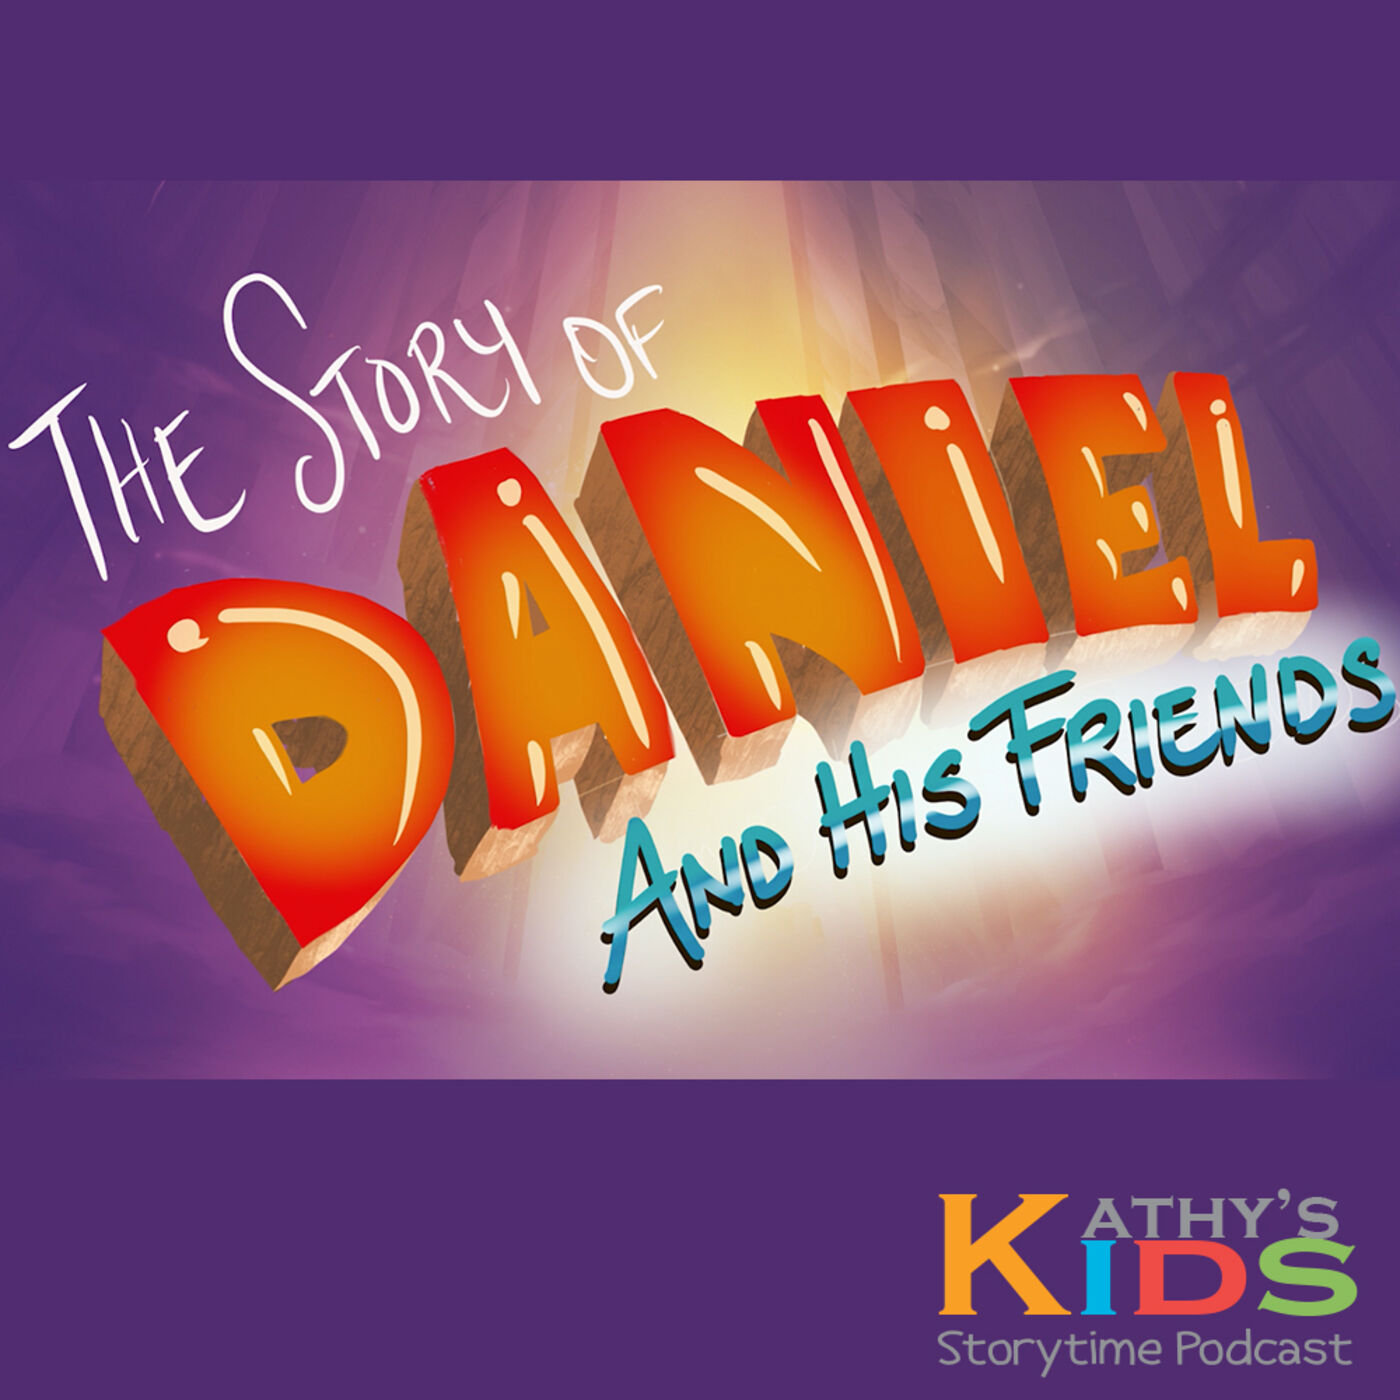 The Golden Image — The Story of Daniel and His Friends, Part 3